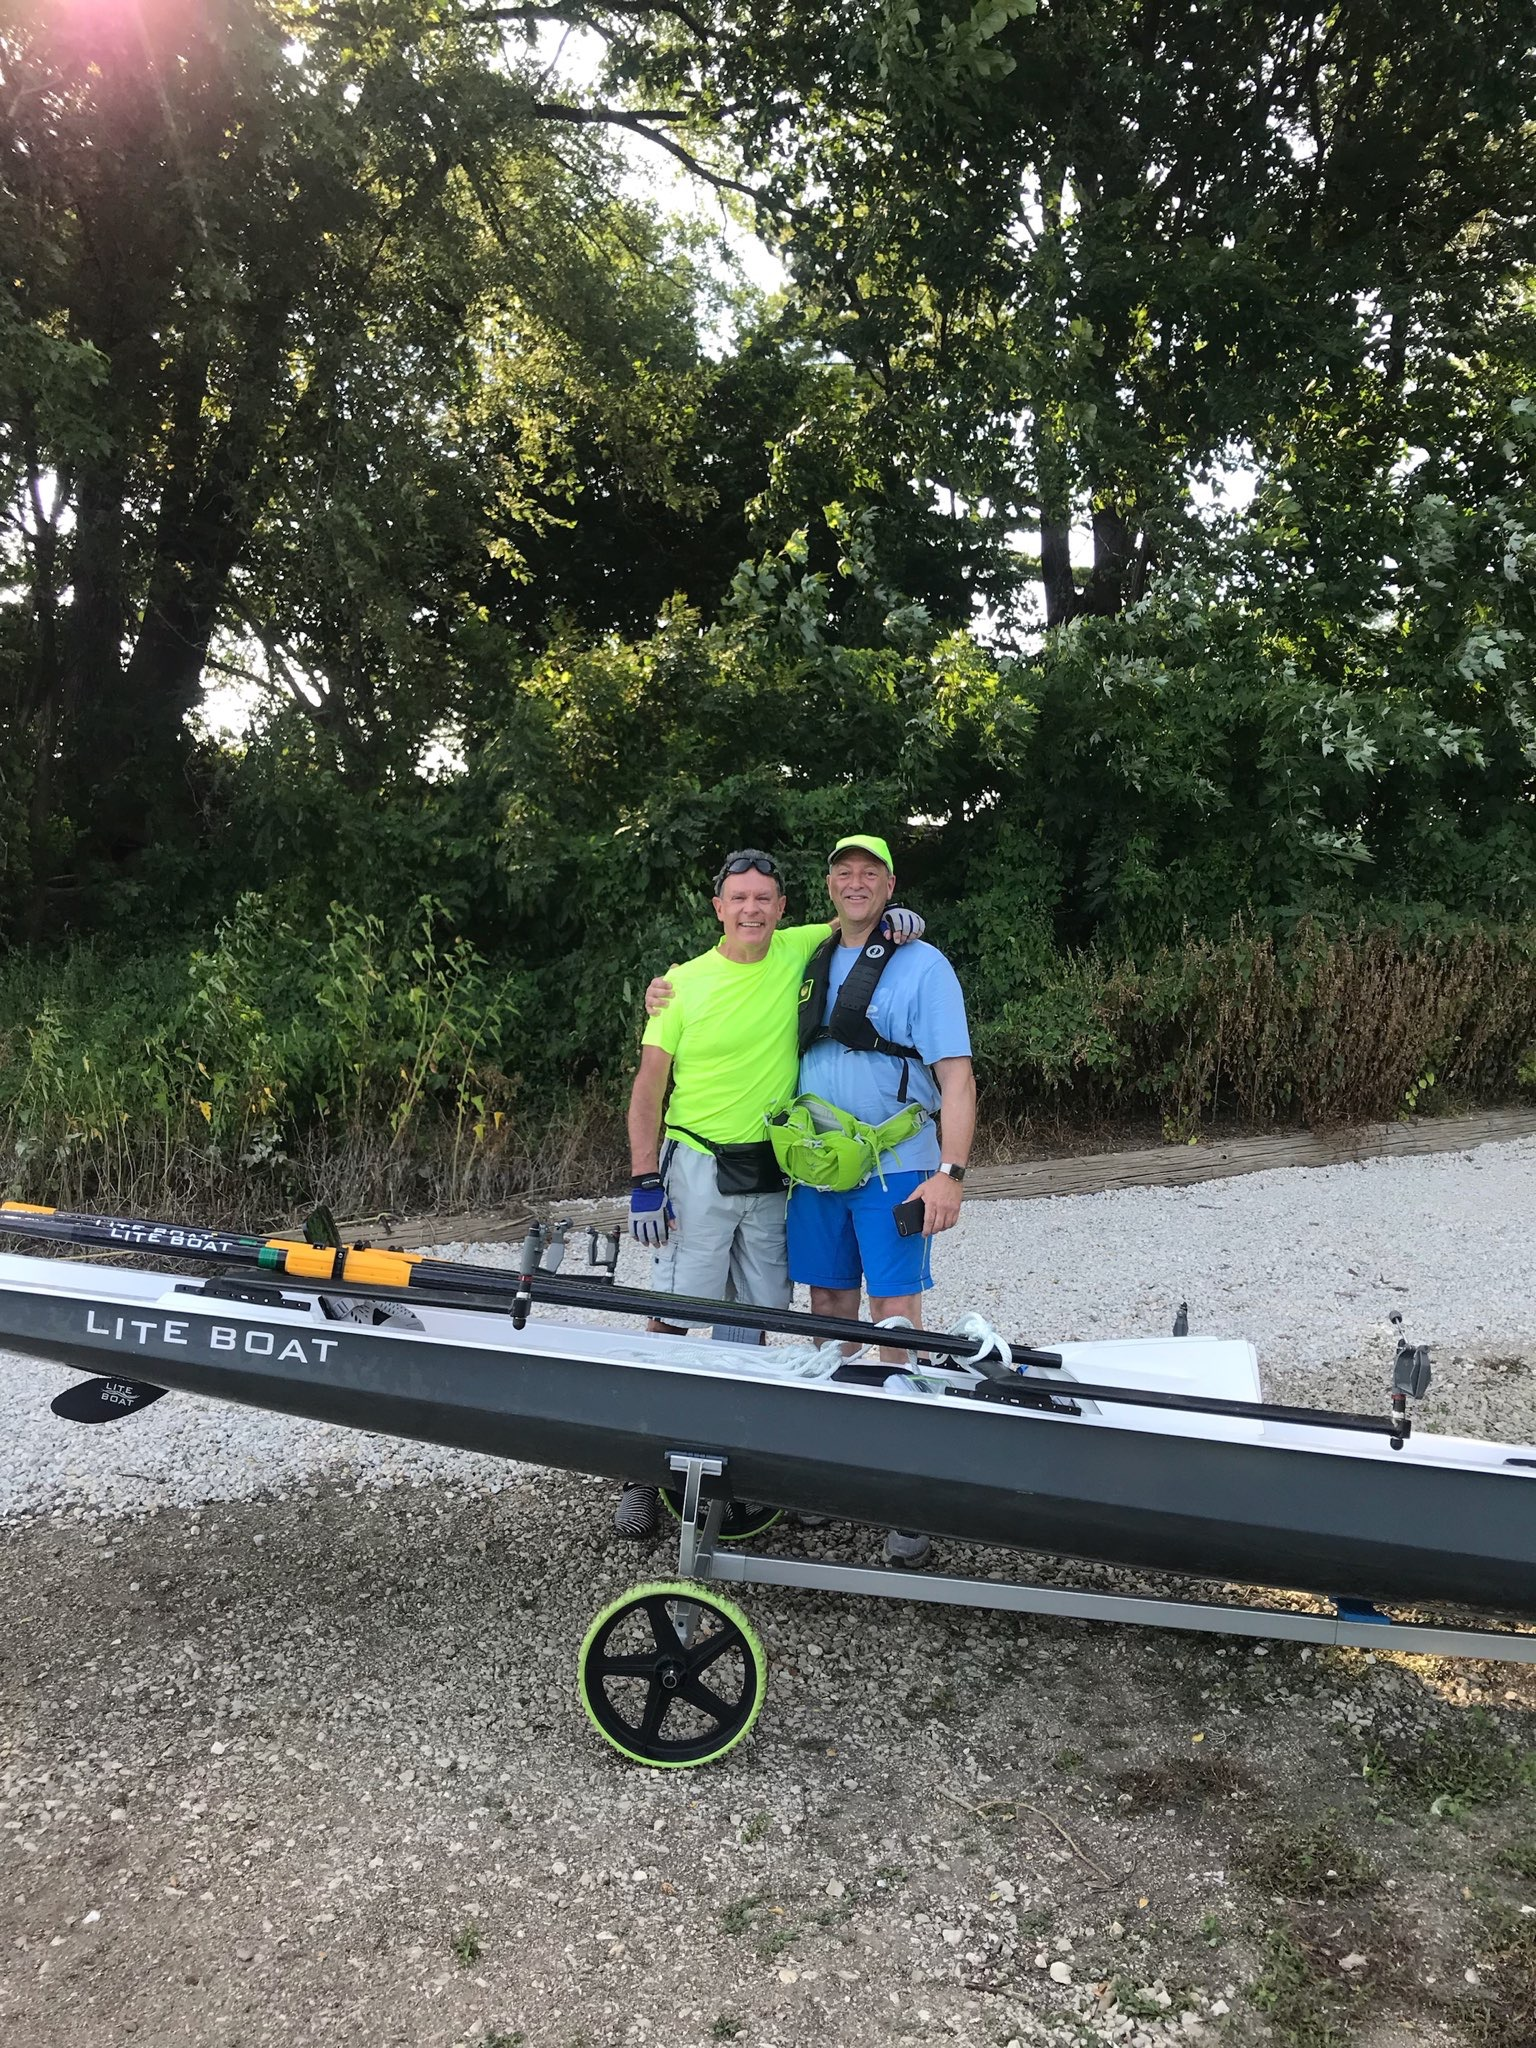 Welcome - Two of our newest members of the LiteBoat family!!